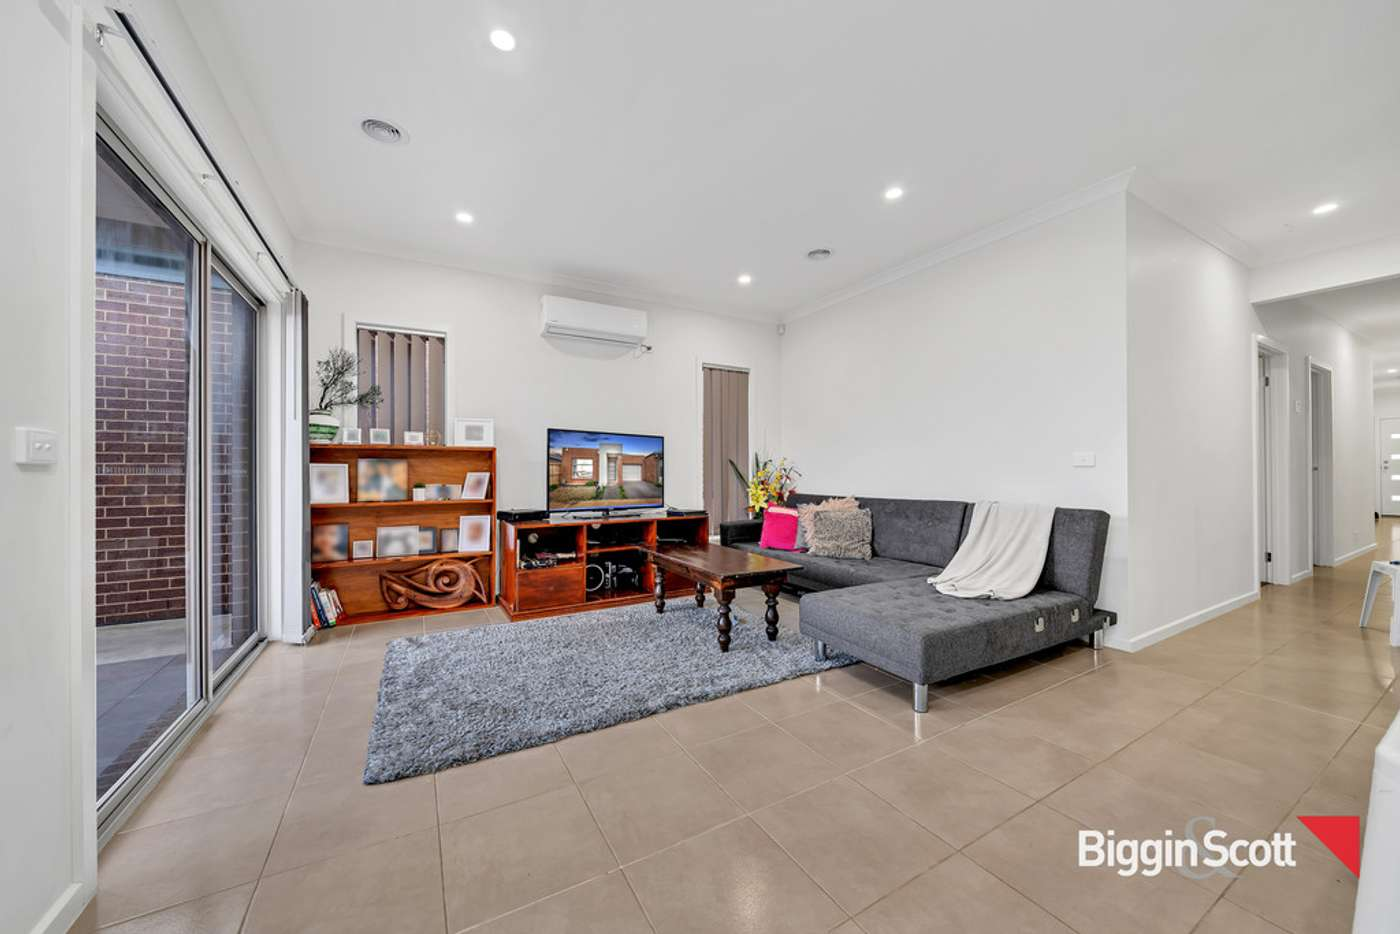 Sixth view of Homely house listing, 3 Cheer Terrace, Tarneit VIC 3029